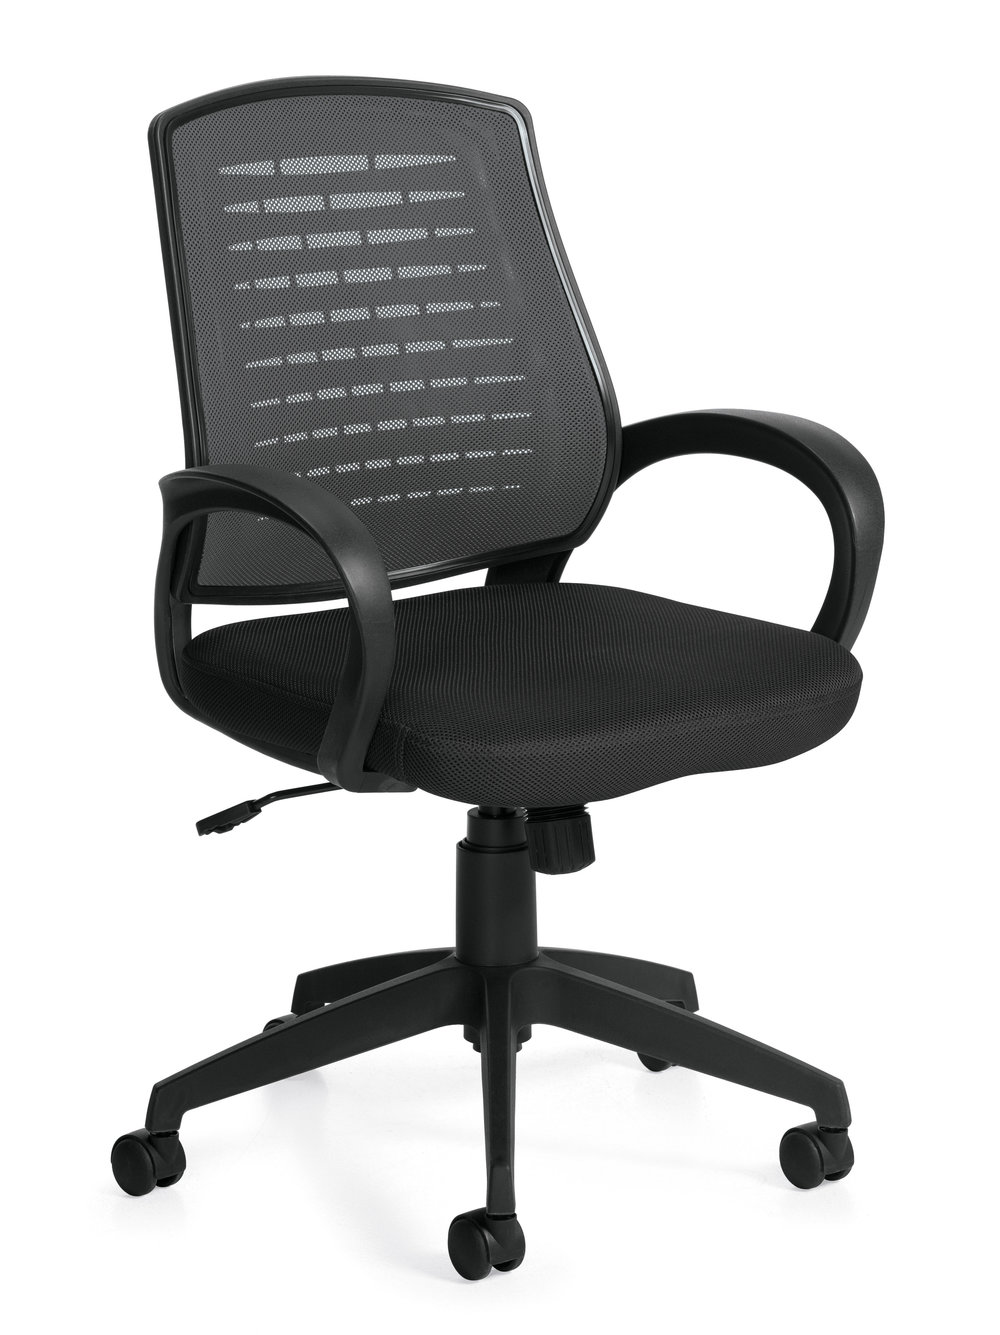 OTG10902B Mesh Back Managers Chair.jpg